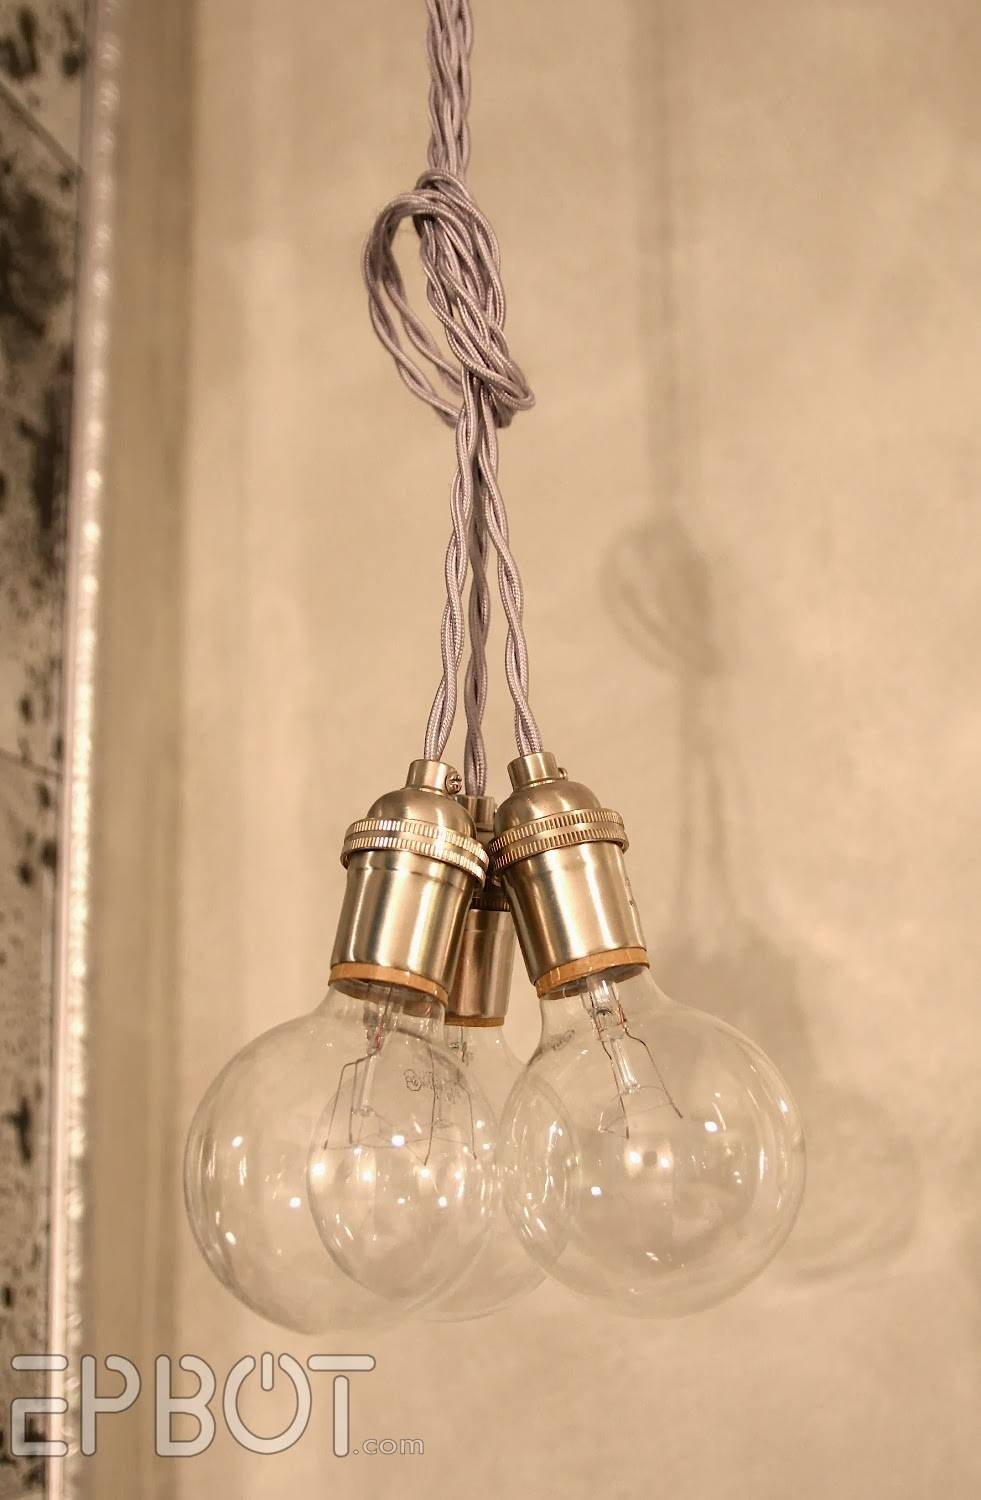 Epbot: Wire Your Own Pendant Lighting – Cheap, Easy, & Fun! Pertaining To Coloured Cord Pendant Lights (View 7 of 15)